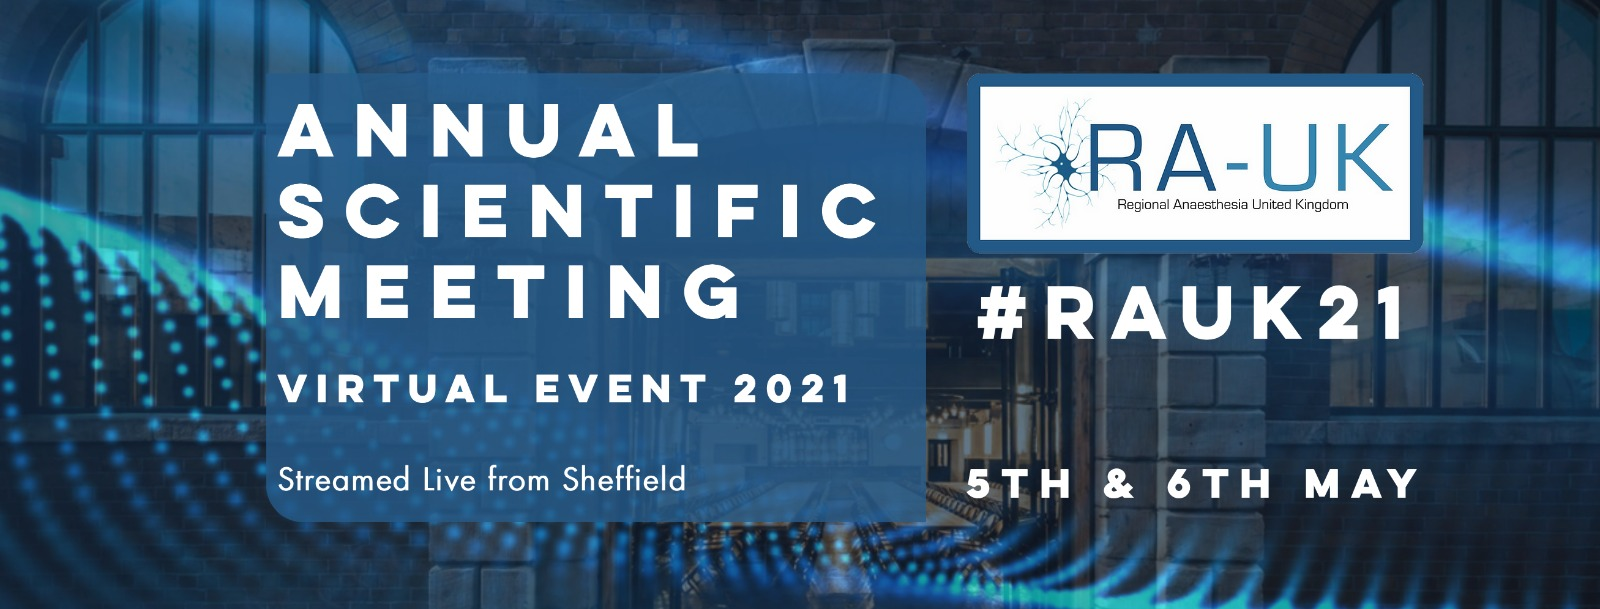 Register for #RAUK21!